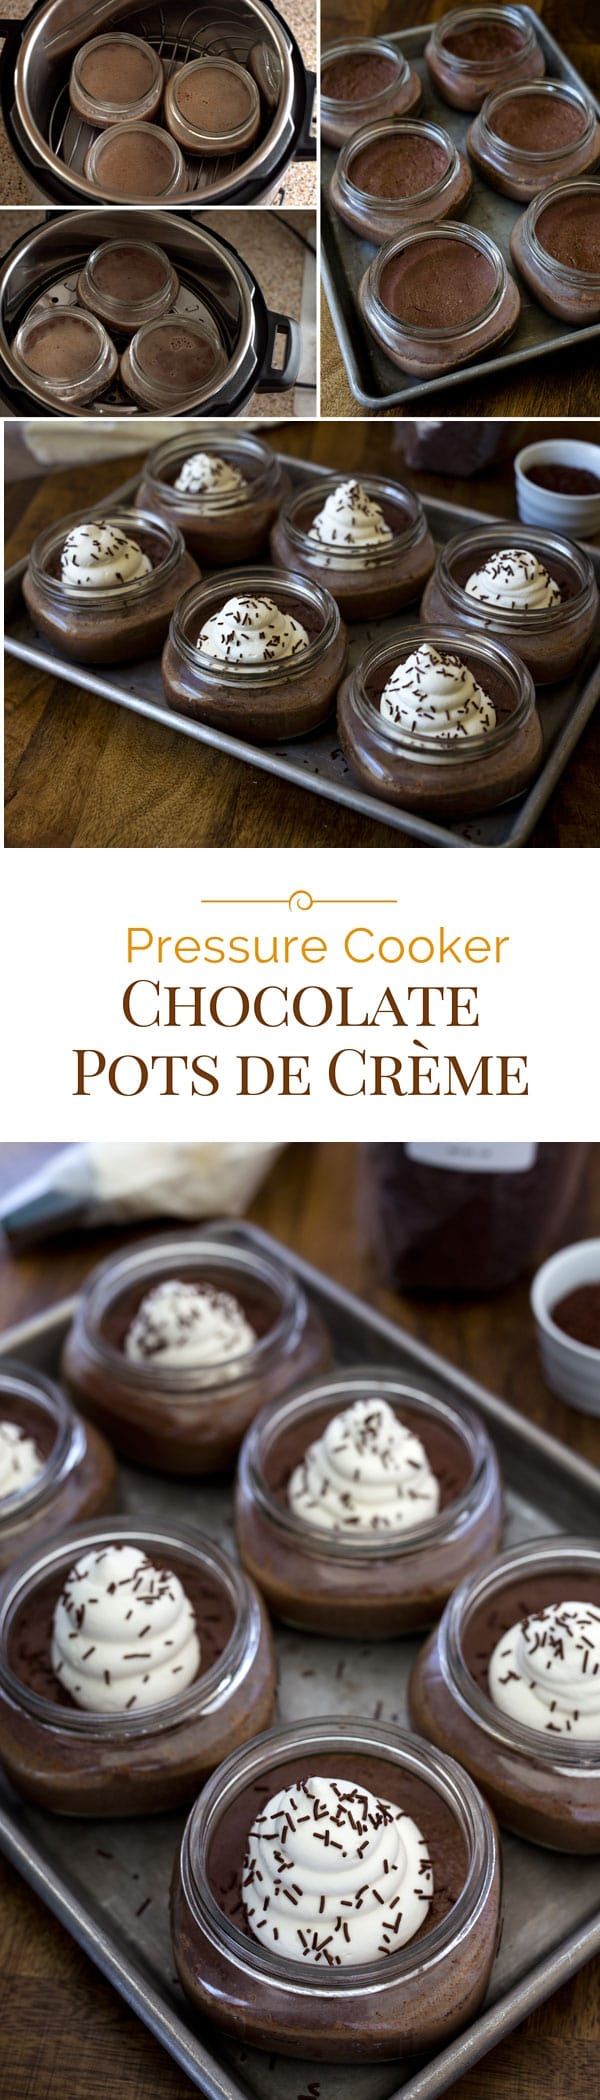 Chocolate Pots de Crème is a decadent and creamy chocolate custard dessert. Baked chocolate custard made in an Instant Pot is effortless and quick. This Pressure Cooker Chocolate Pots de Crème recipe is elegant enough for entertaining, but simple enough for a casual weeknight dessert. #instantpot #pressurecooking #dessertrecipe #chocolate via @PressureCook2da